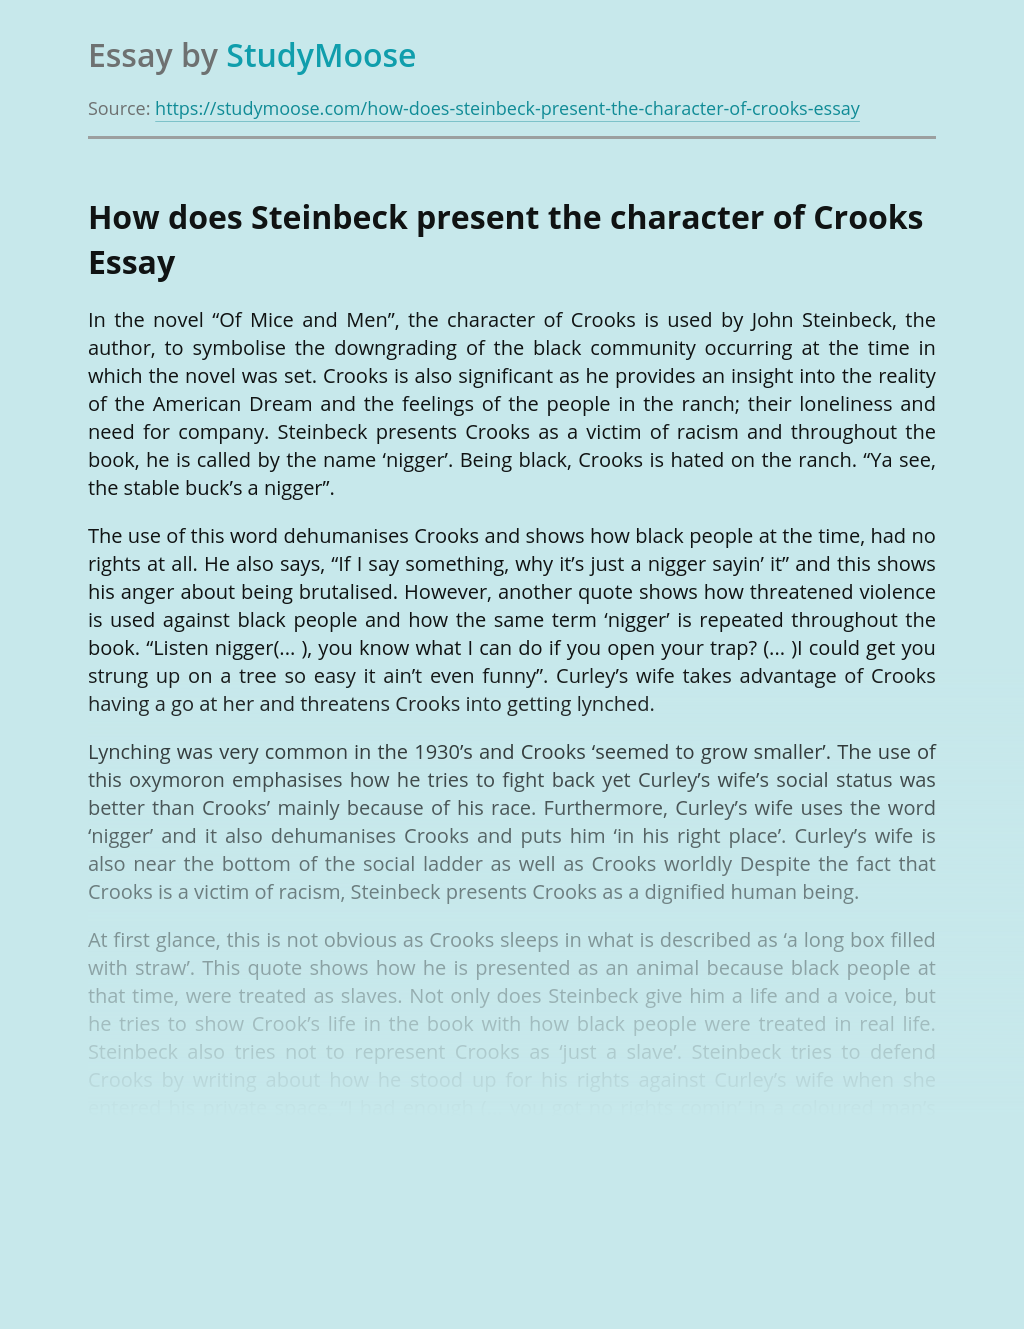 How does Steinbeck present the character of Crooks